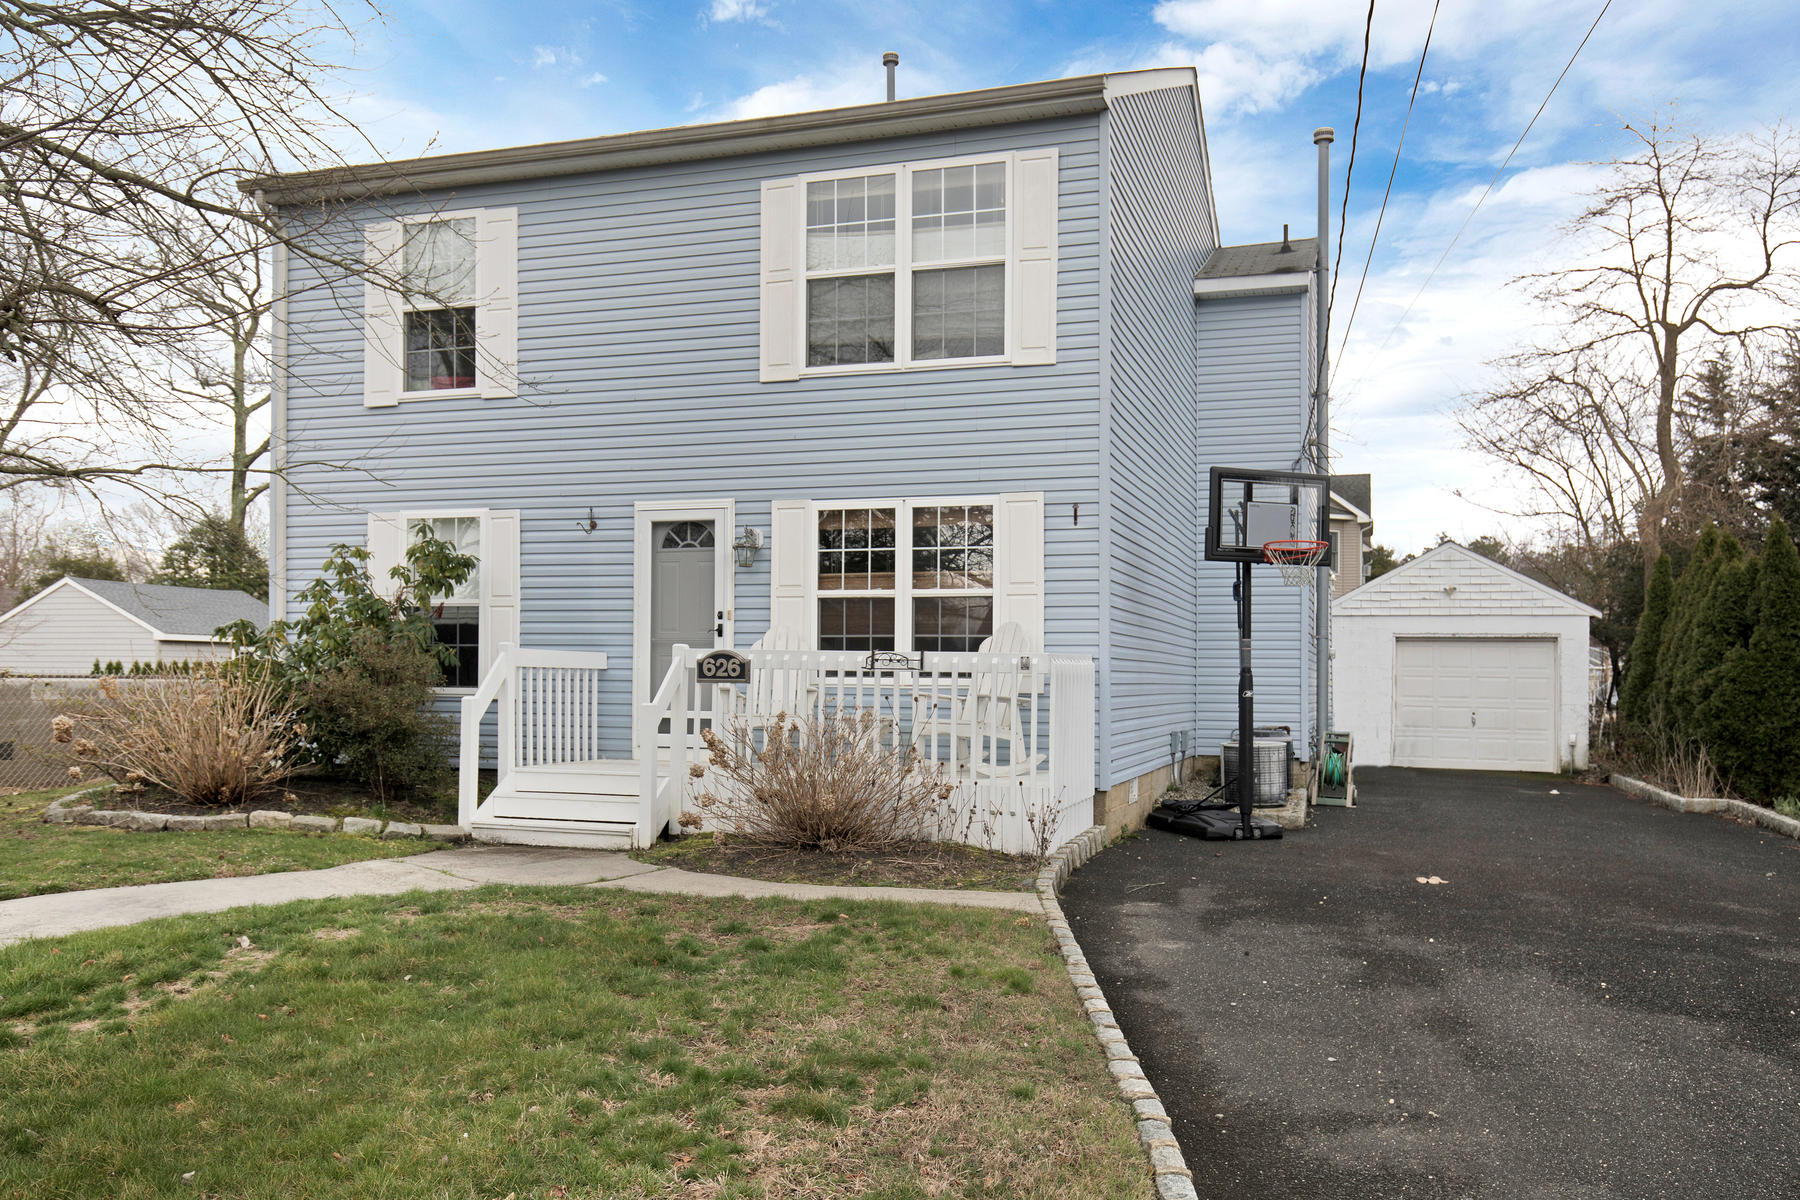 Single Family Home for Sale at Desirable East Of The Canal Location 626 Delaware Avenue Point Pleasant, New Jersey 08742 United States